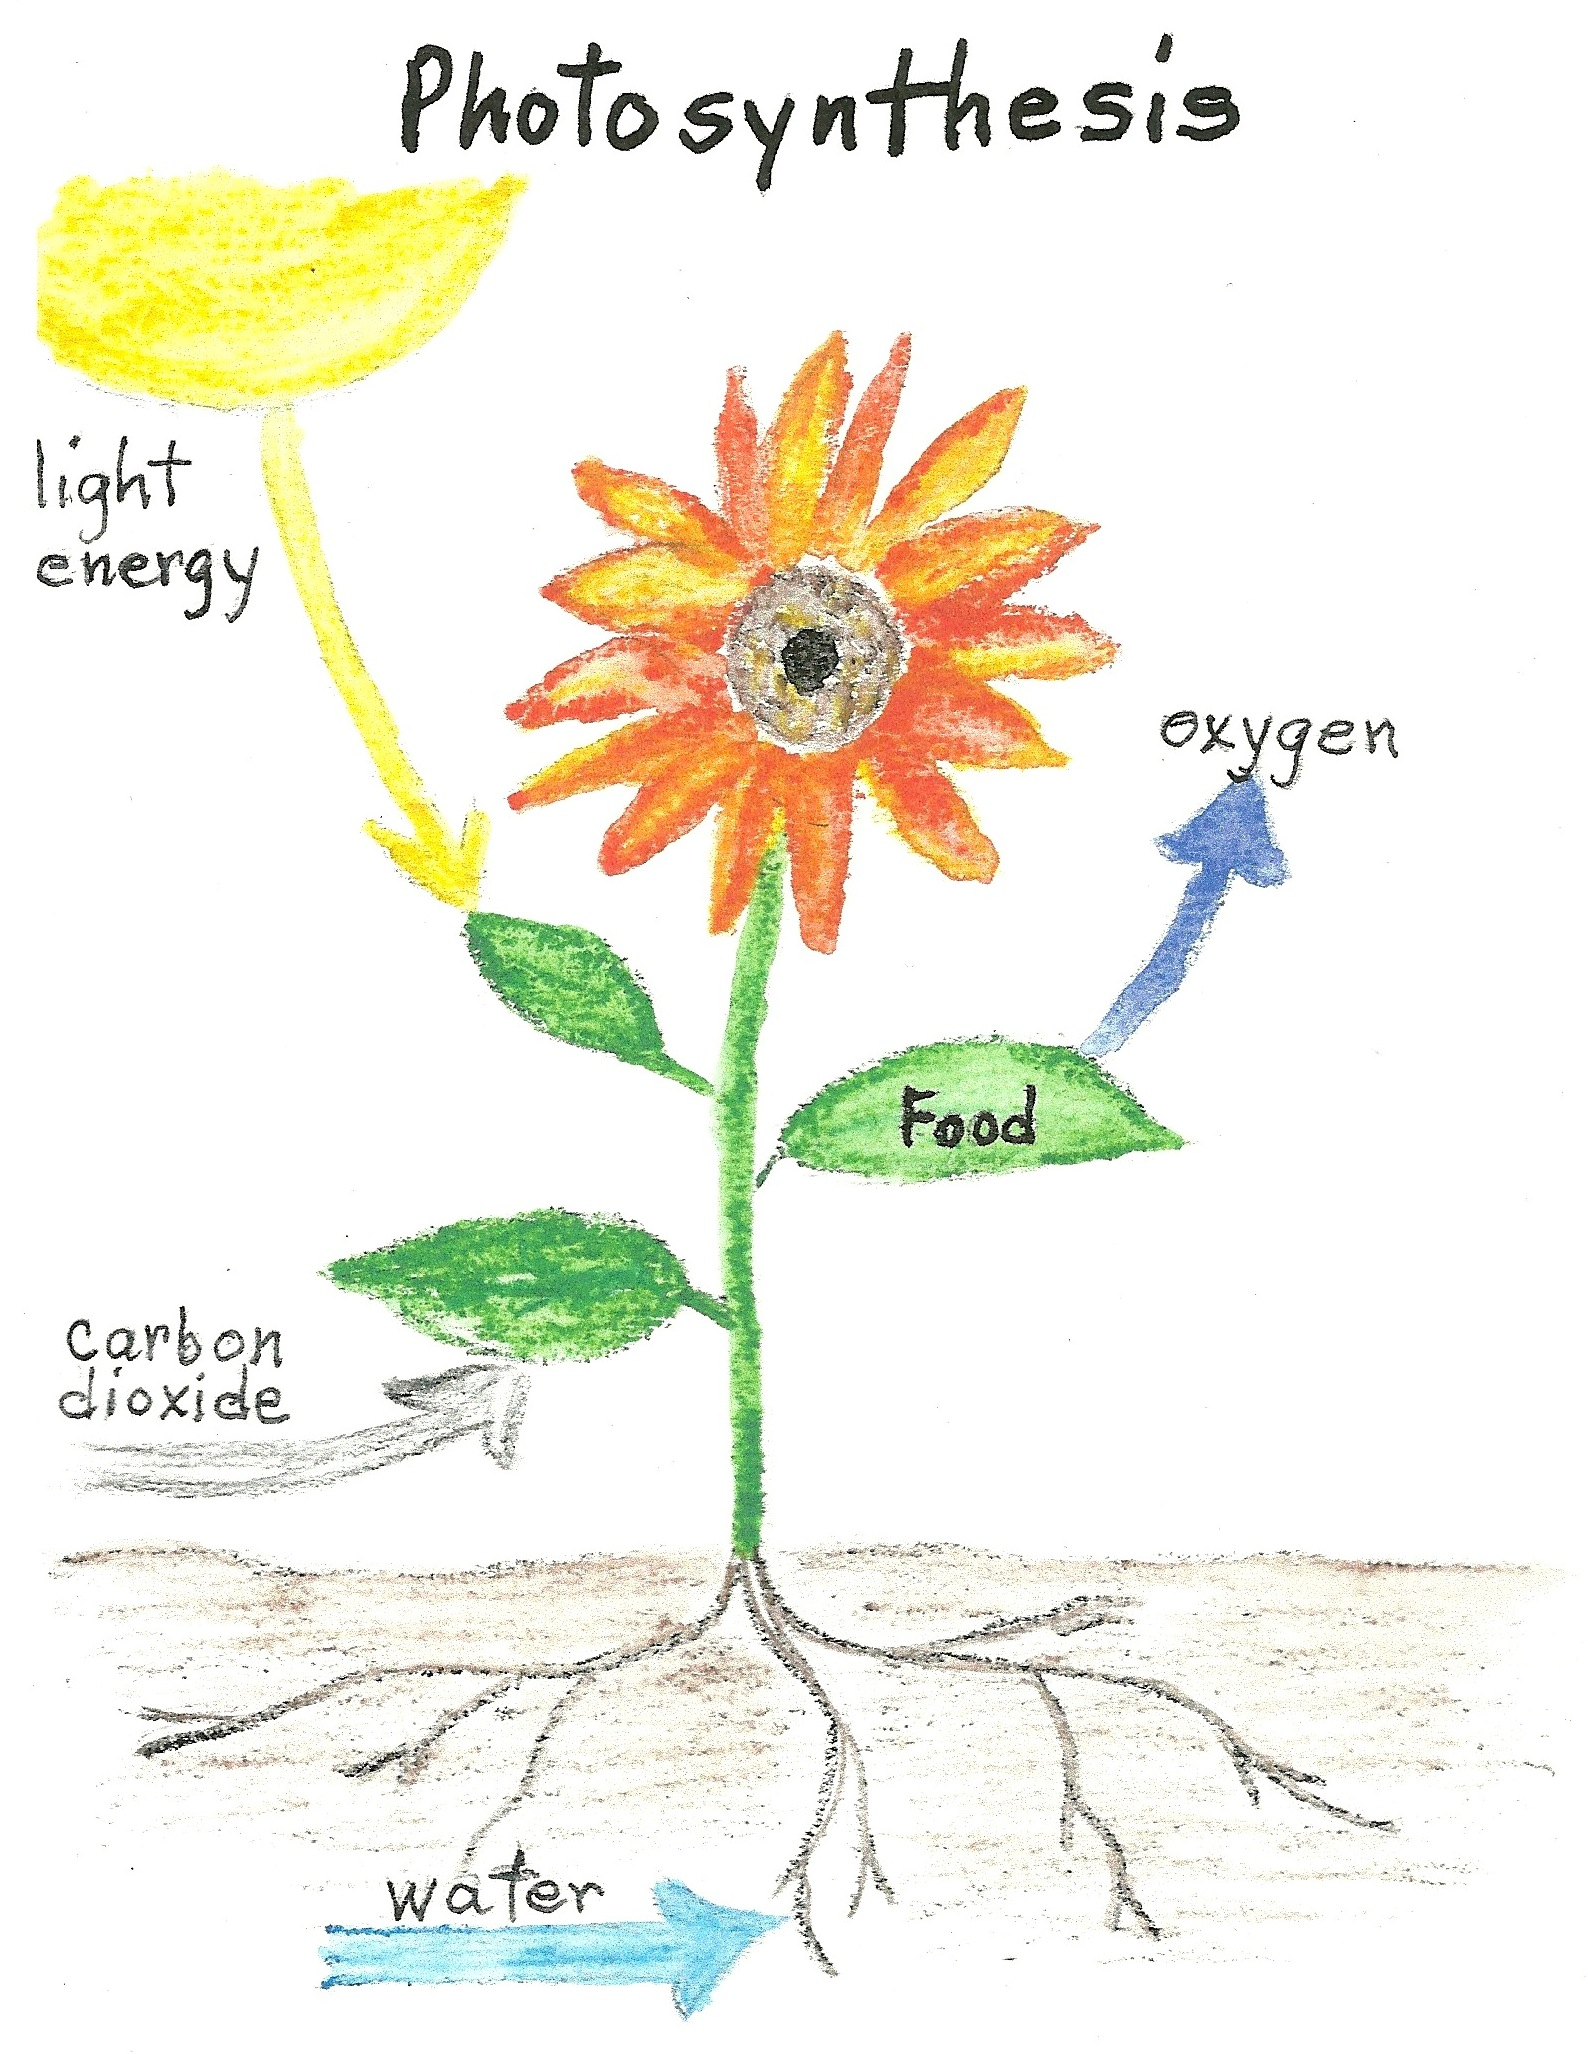 photosythesis are Photosynthesis is a process used by plants and other organisms to convert light energy into chemical energy that can later be released to fuel the organisms.